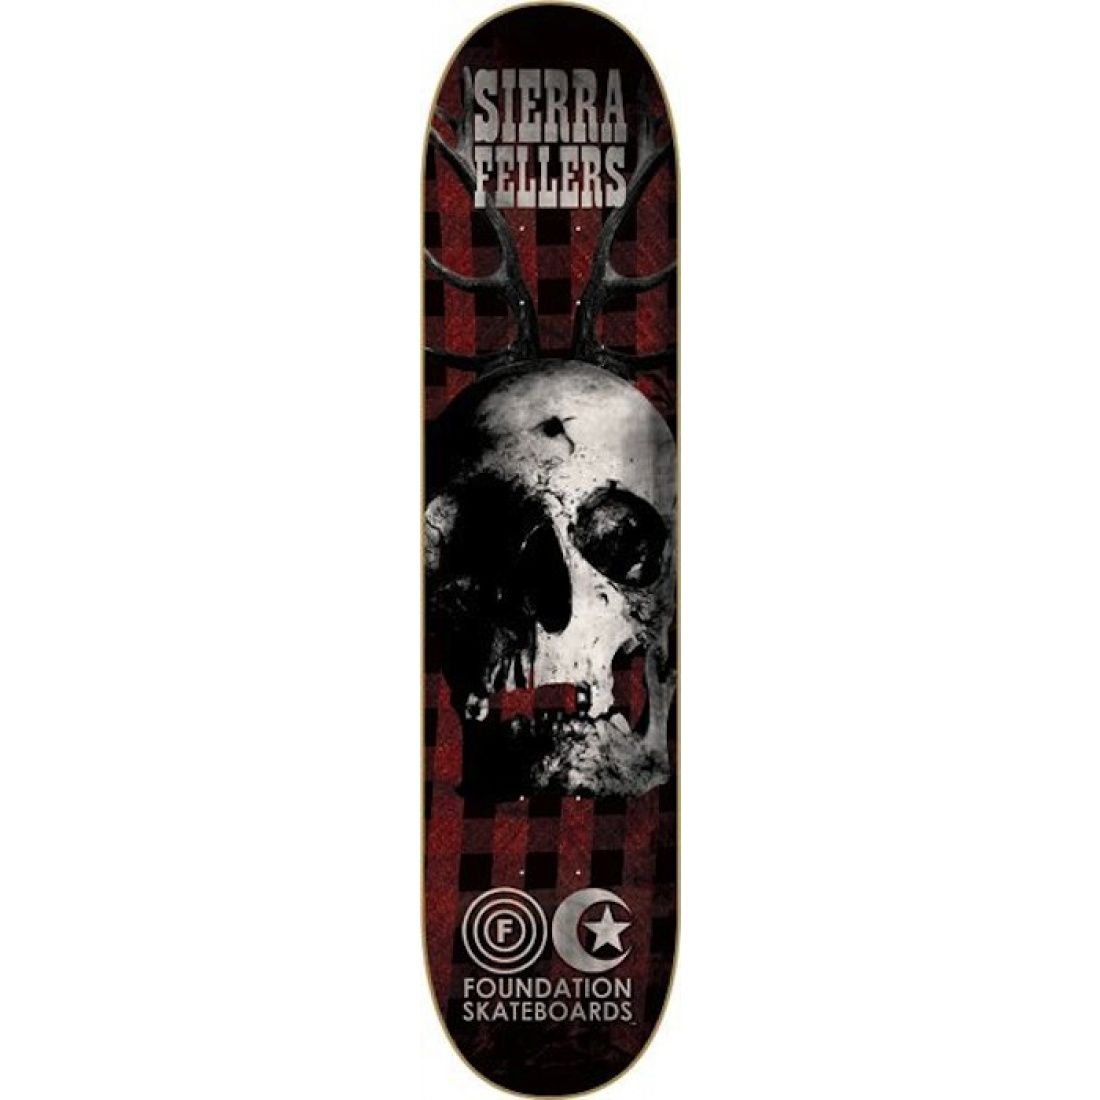 FS-Fellers Death Club 7.75 Deck